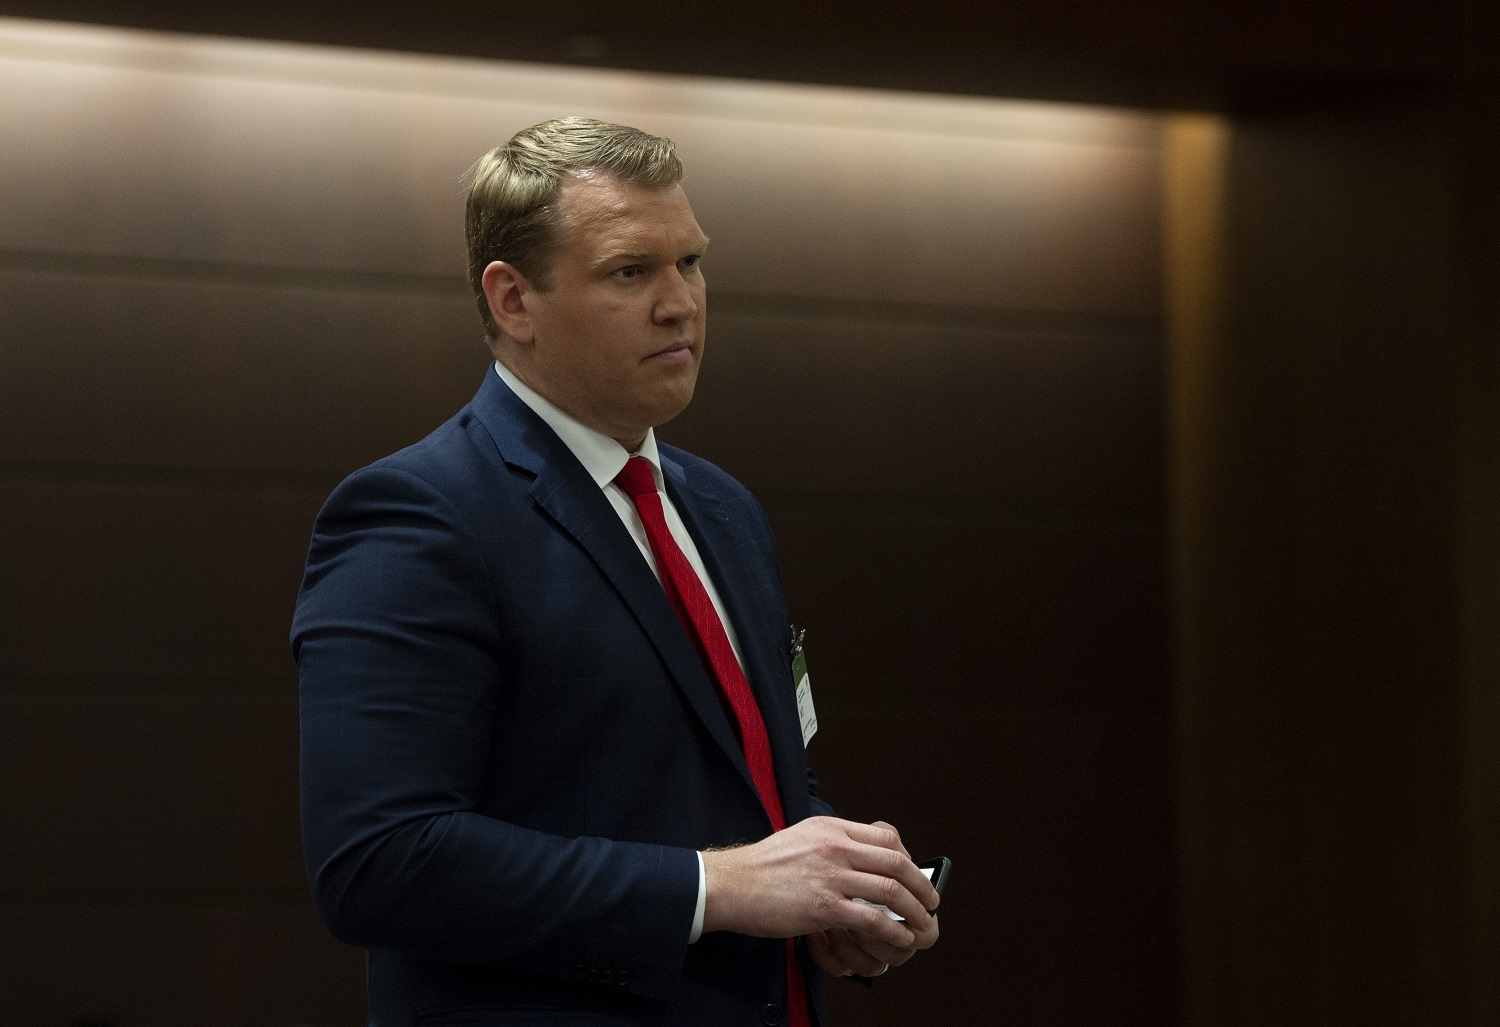 Co-founder and CEO of the Concussion Legacy Foundation Chris Nowinski waits to appear at the House of Commons' health committee on sports-related concussions in Ottawa, Wednesday, Feb. 6, 2019. Nowinski is critical of the Consensus statement on concussion in sport. (Adrian Wyld/Canadian Press)